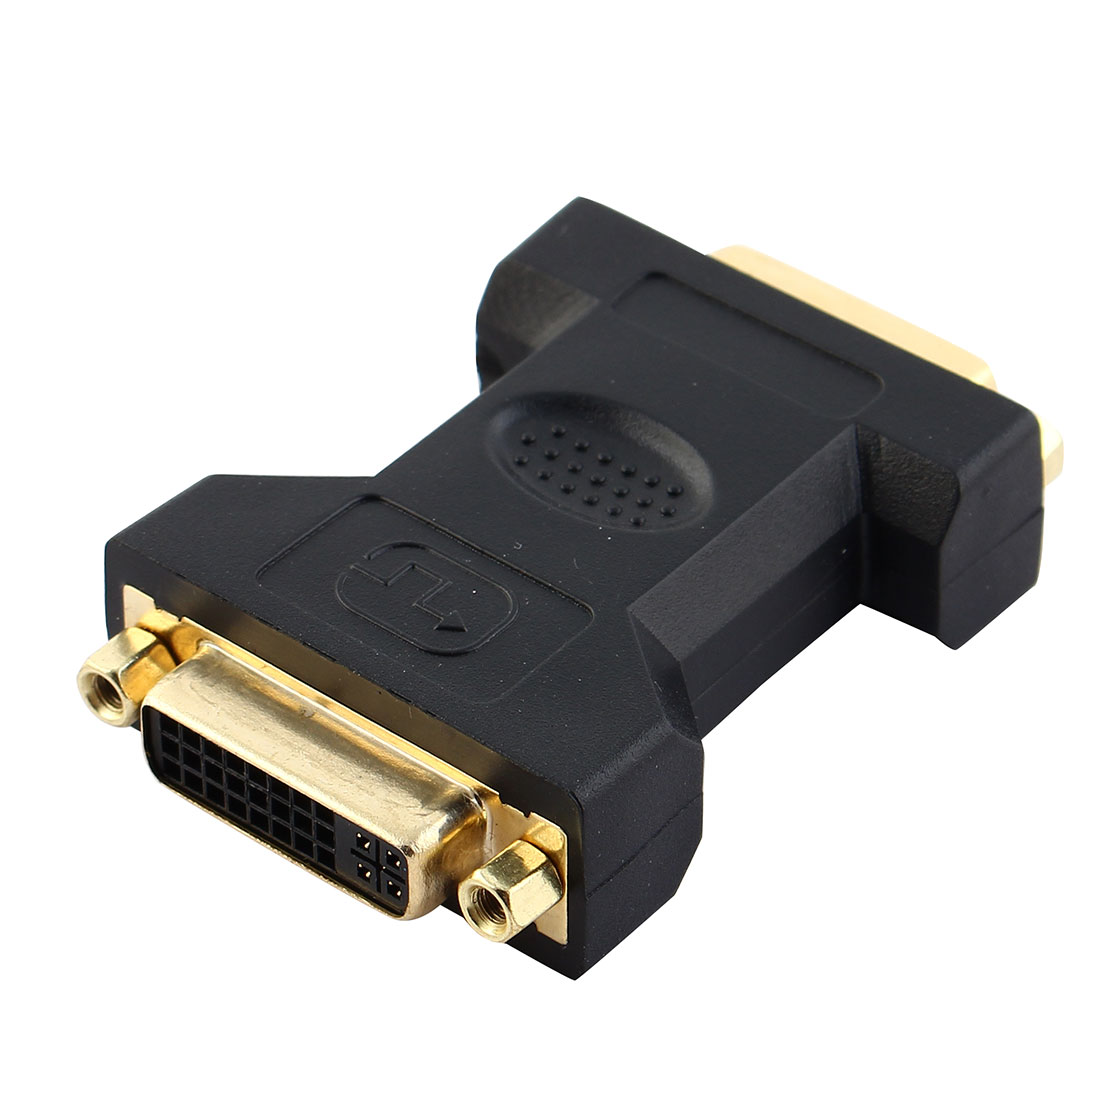 DVI - I 24+5 Converter Coupler Female to Female